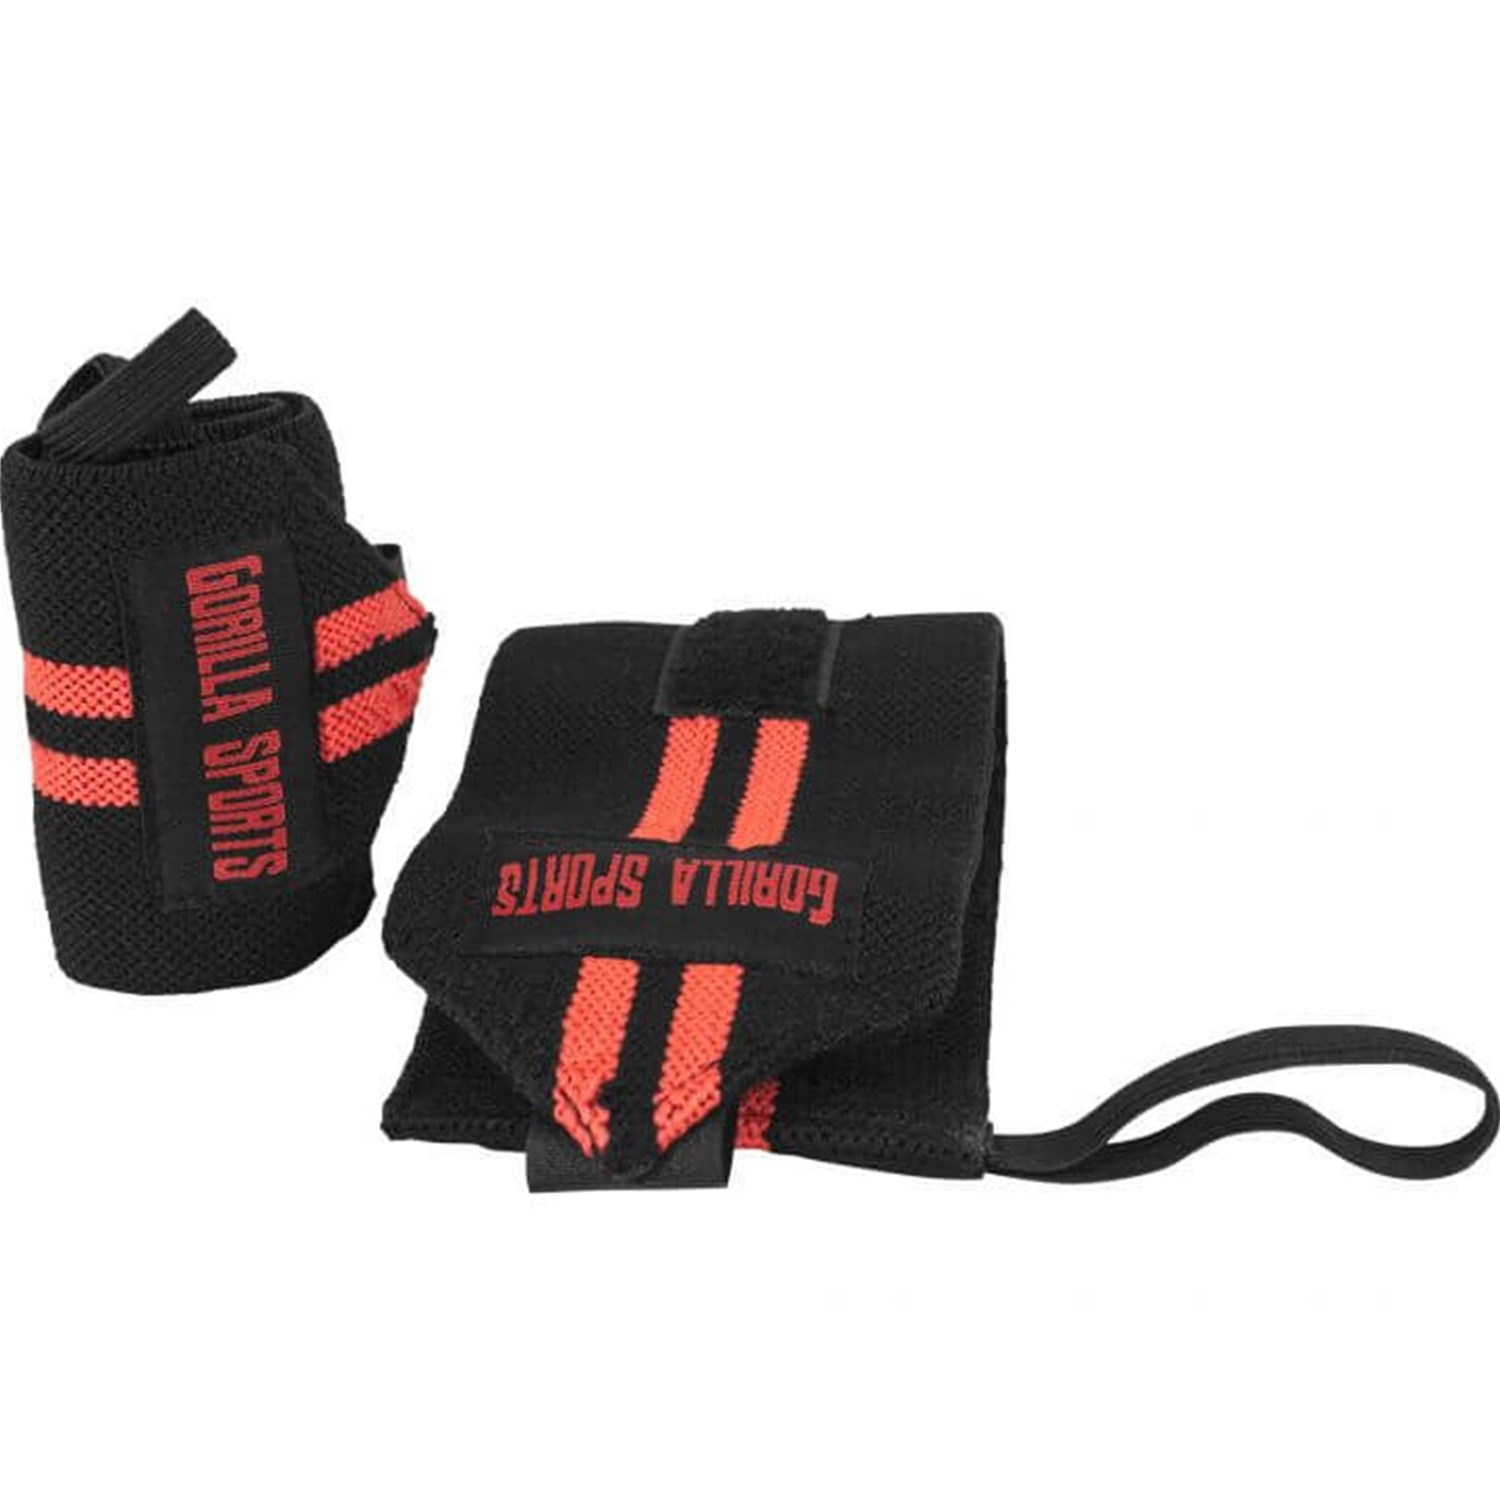 Gorilla Sports Wrist-Wraps - 5